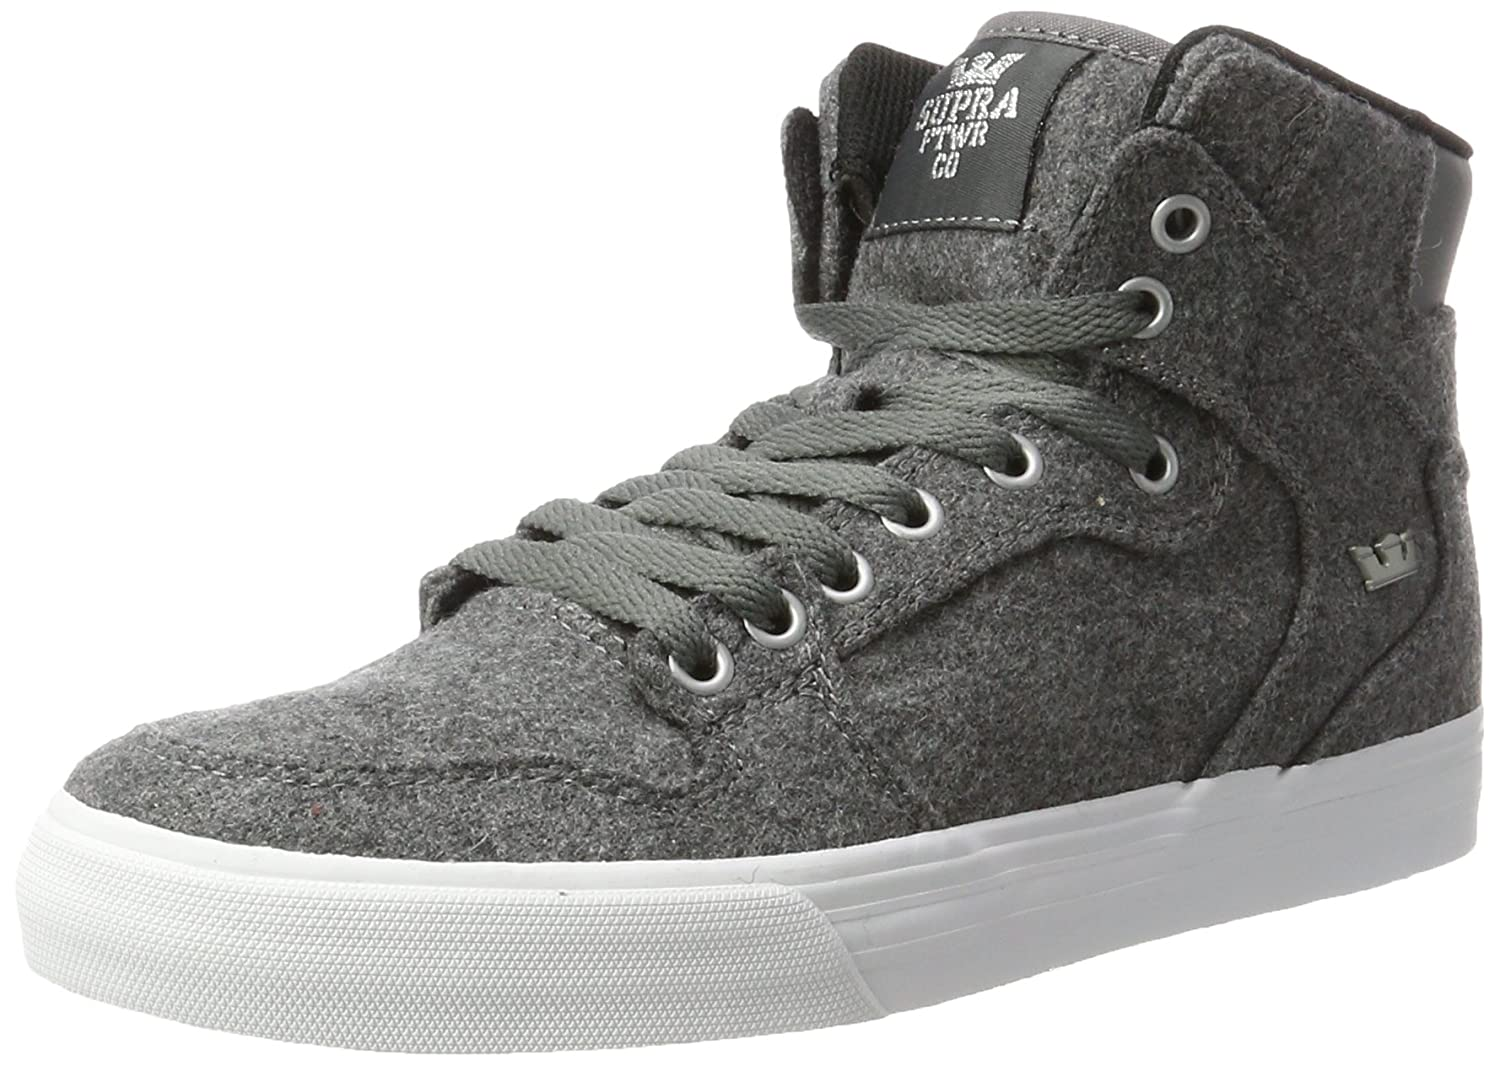 Supra Vaider LC Sneaker B06XYCFZD6 7.5 M US|Charcoal Wool/White